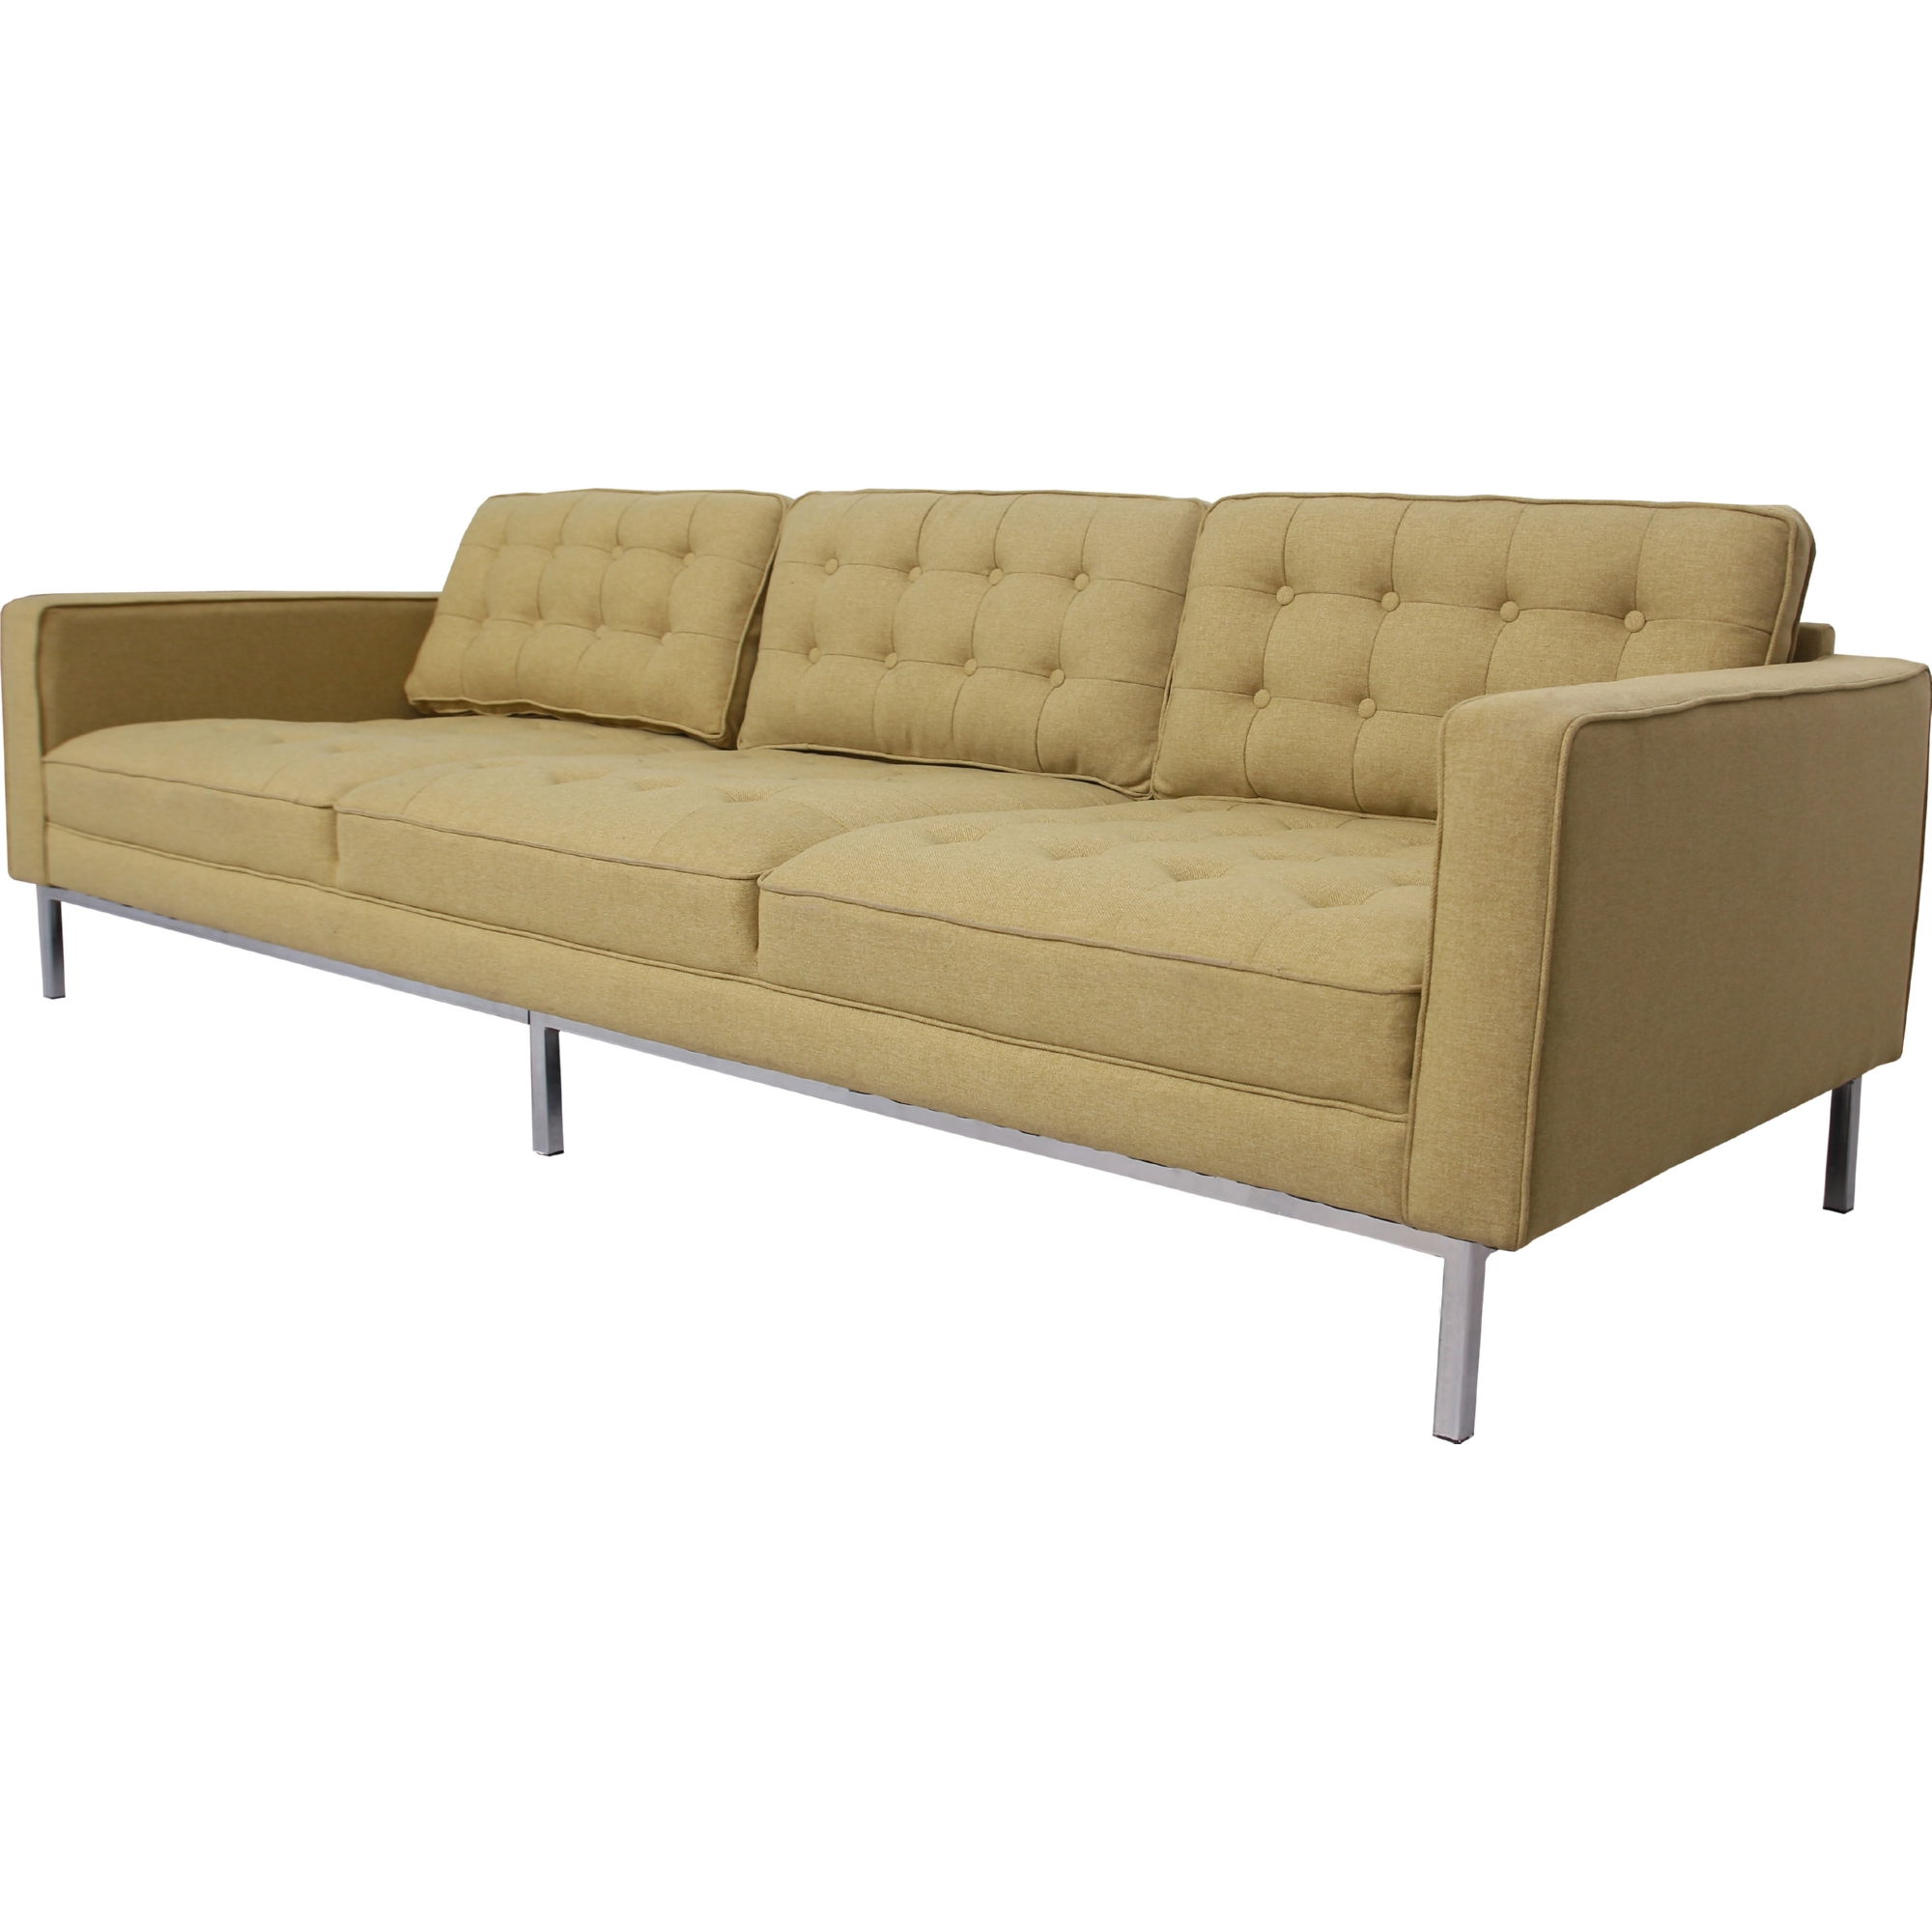 Draper Sofa in Tufted Yellow Linen on Metal Legs by Chic Home